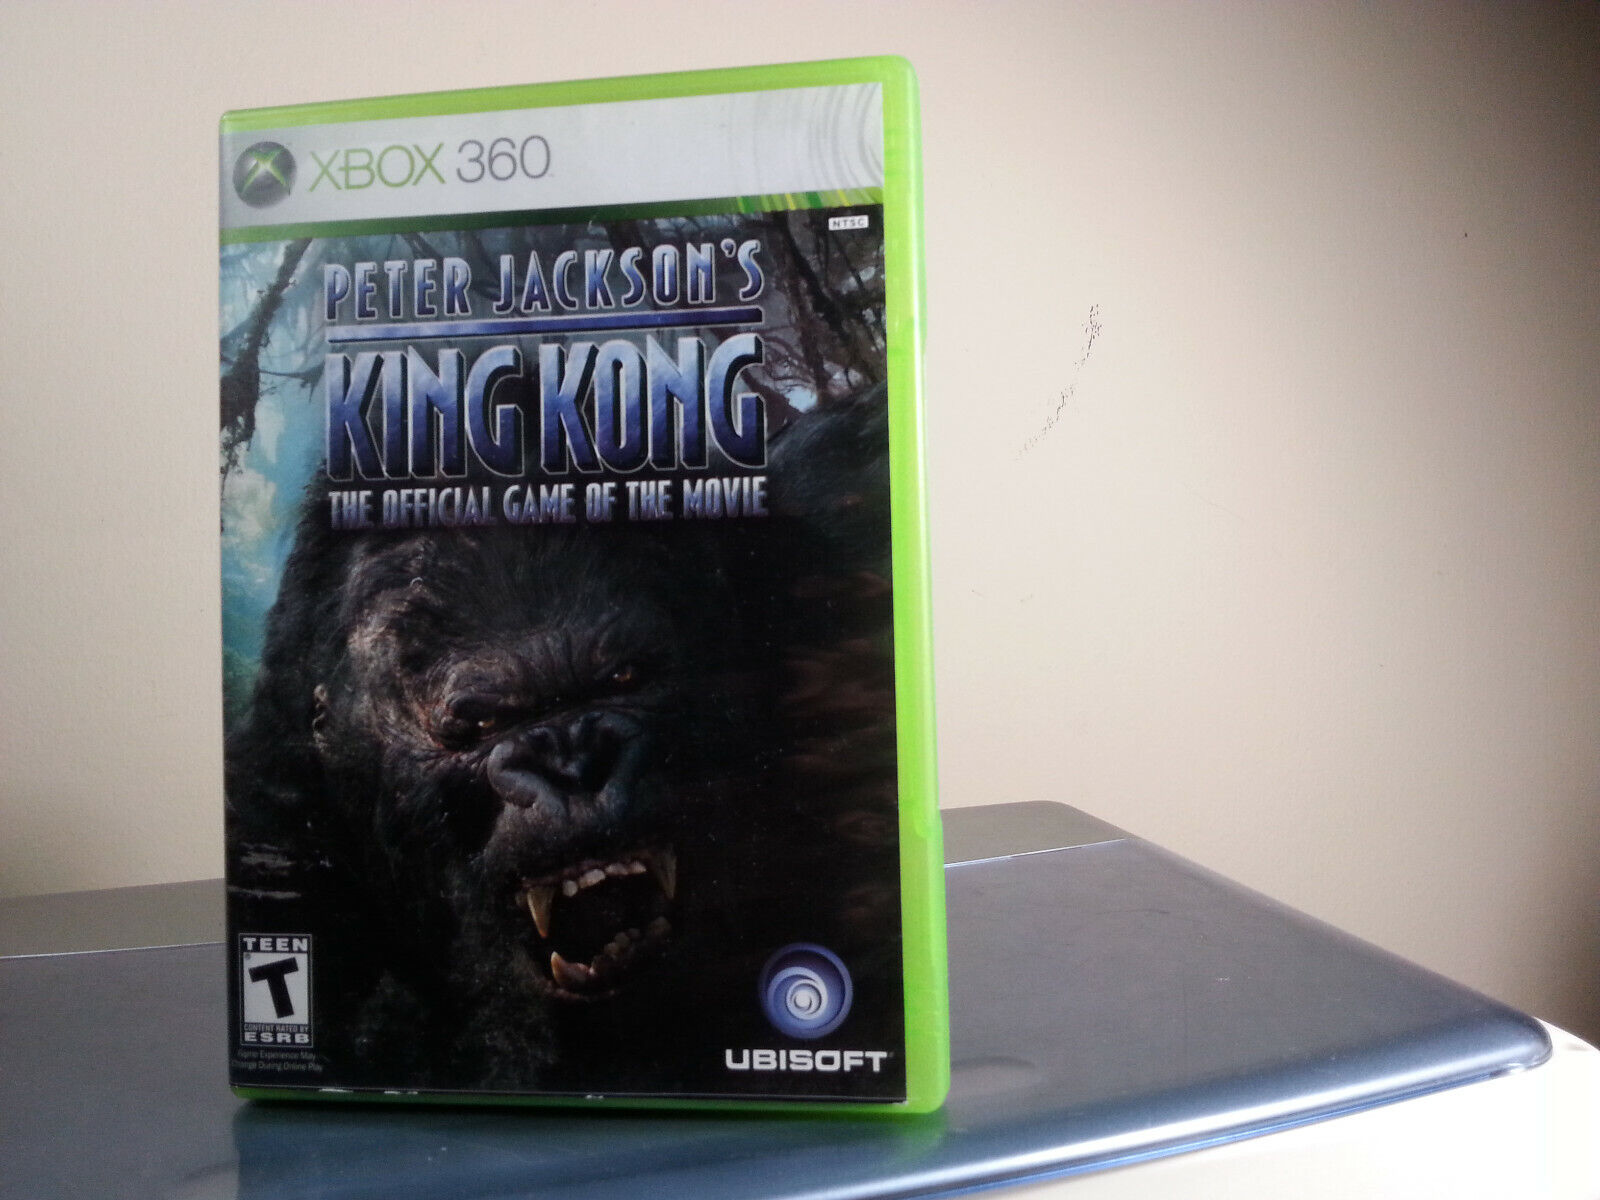 VG XBOX 360 Peter Jackson s King Kong The Official Game Of The Movie COMPLETE - $49.99